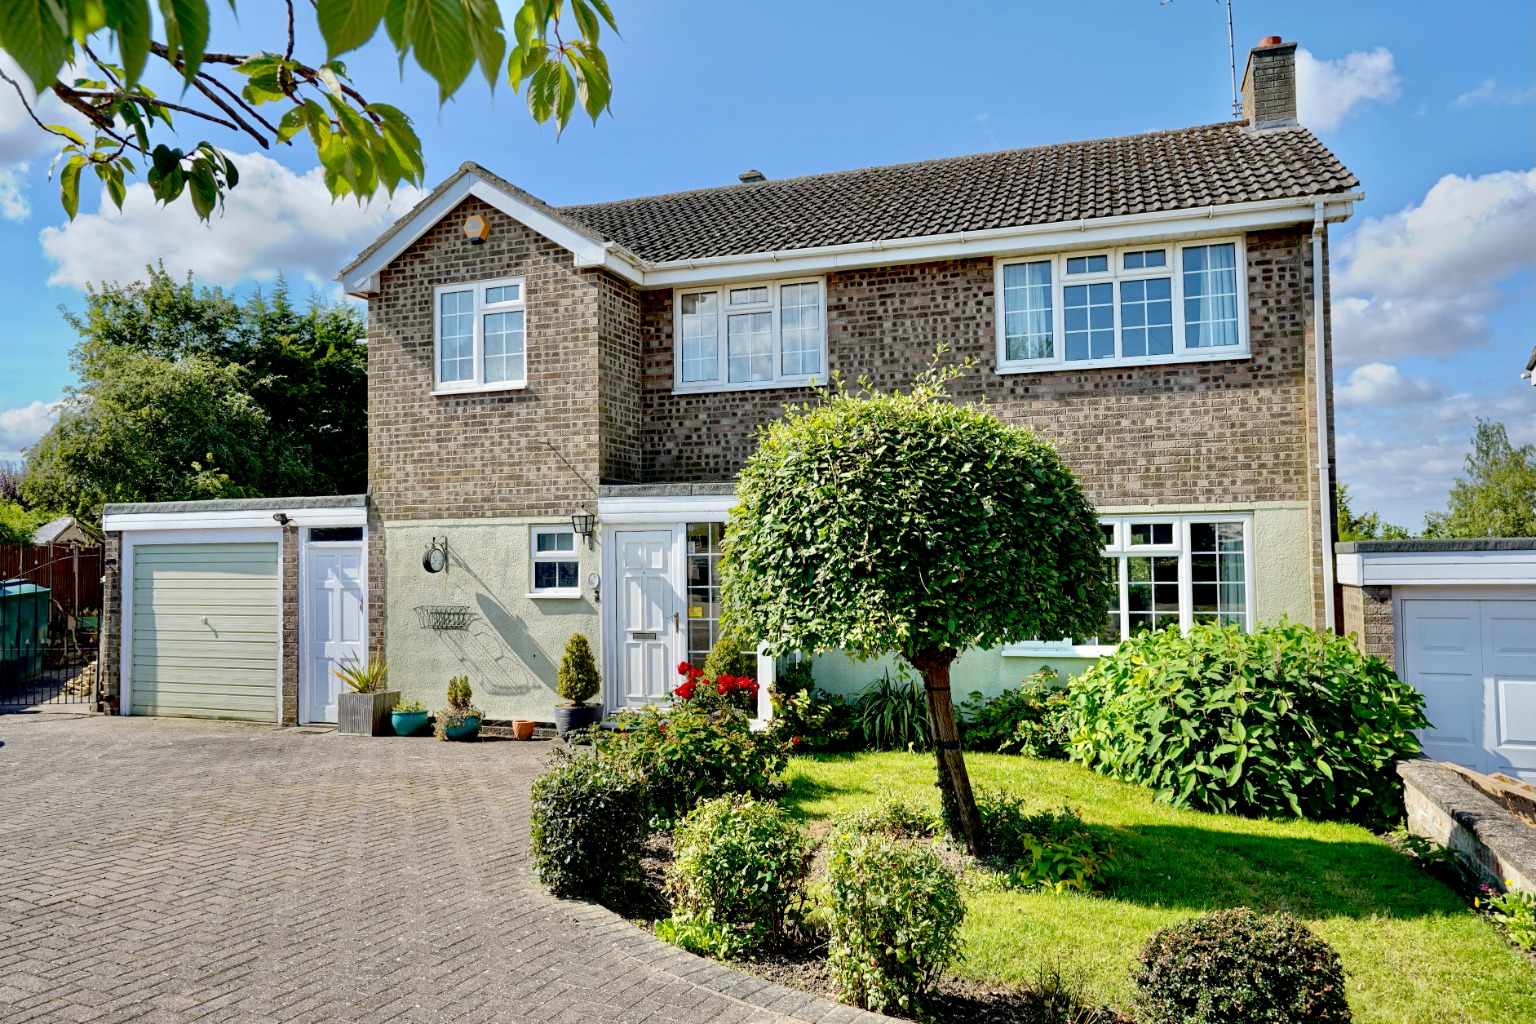 4 bed detached house for sale in Yeomans Close, Huntingdon 1